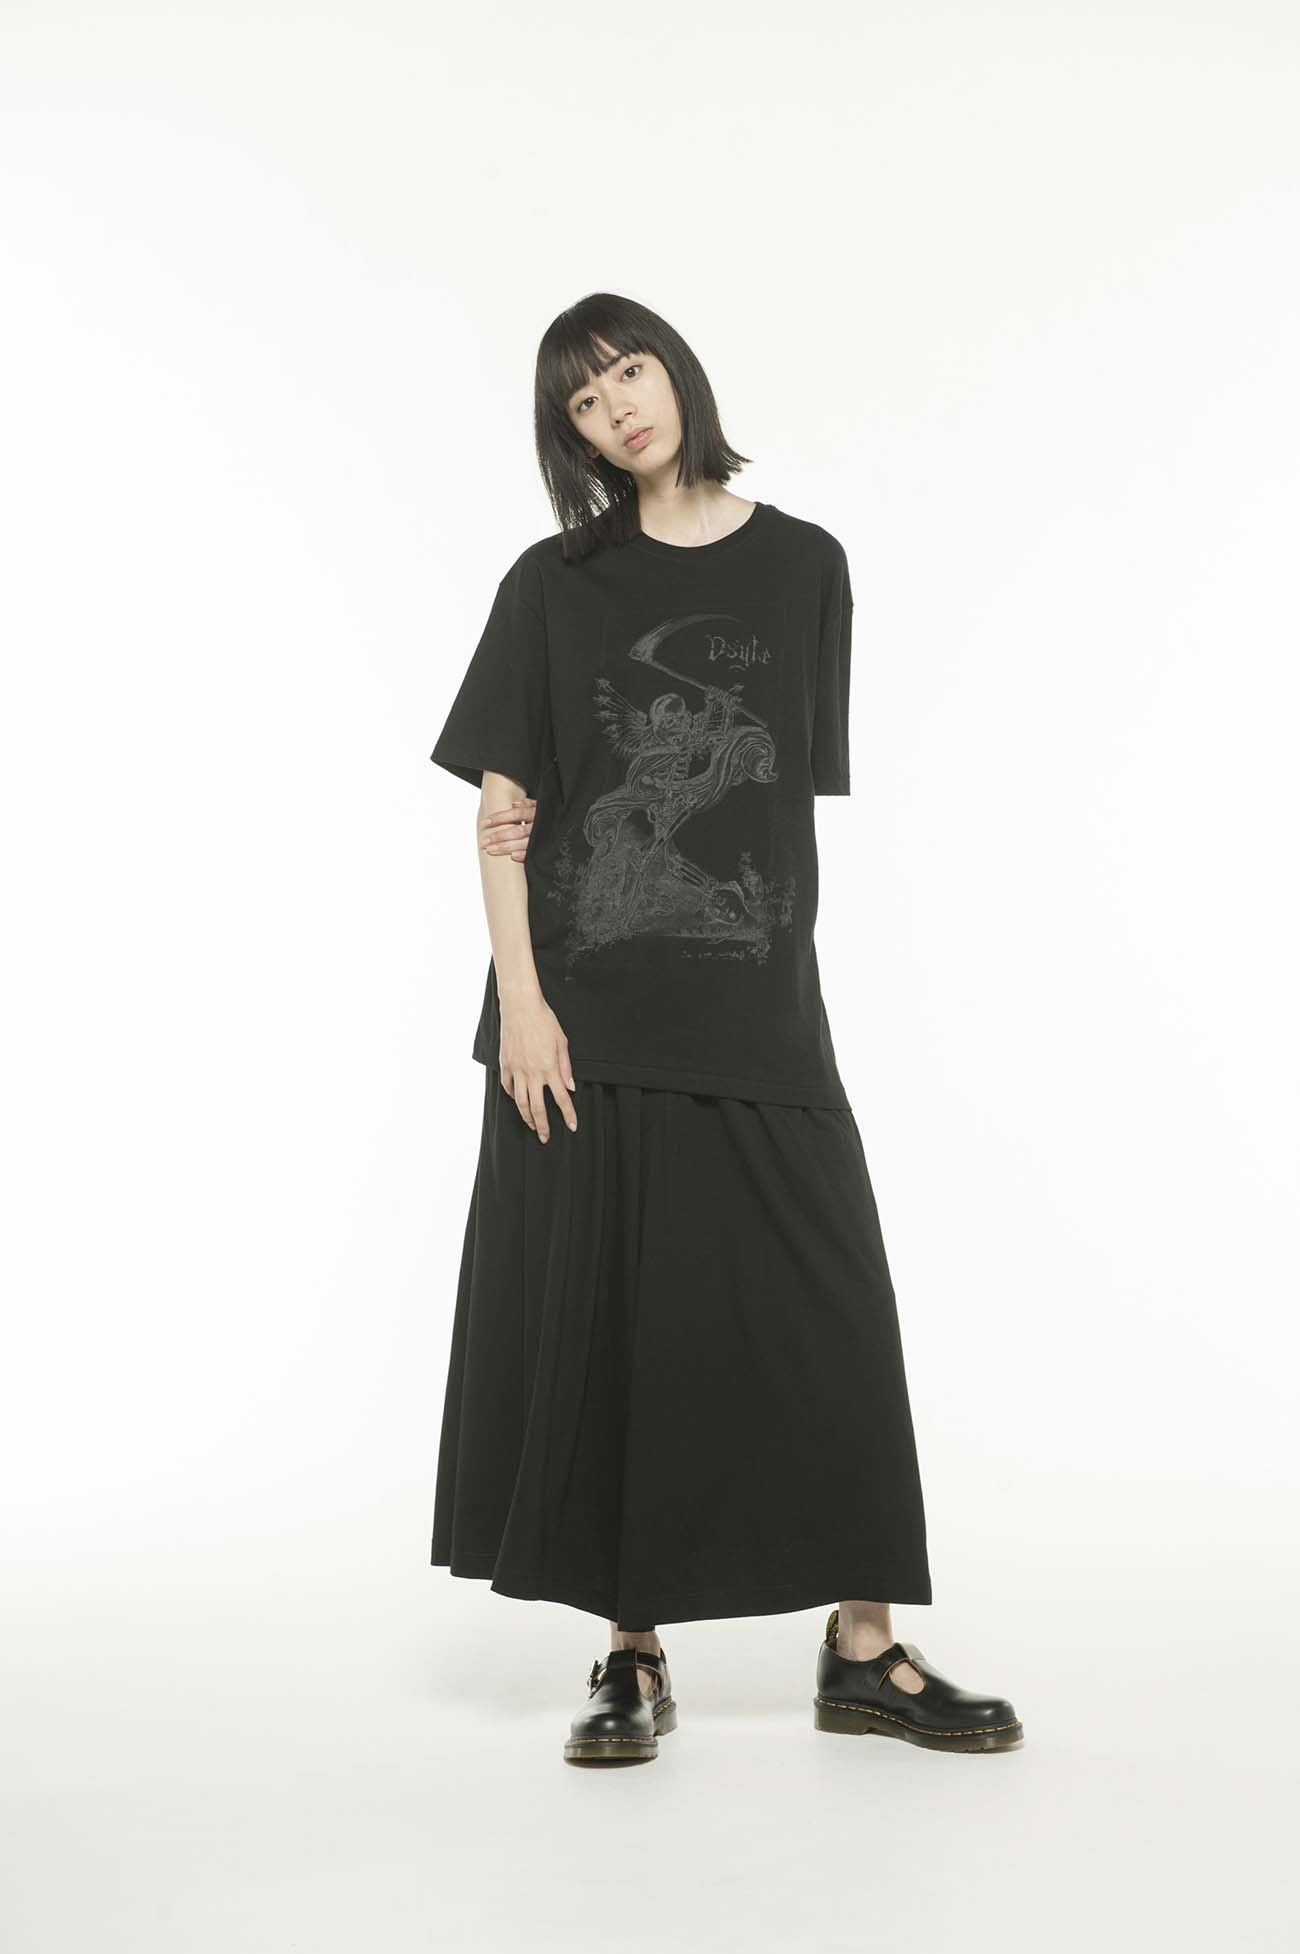 20/CottonJersey Ds'yte Metal Skull T-Shirt